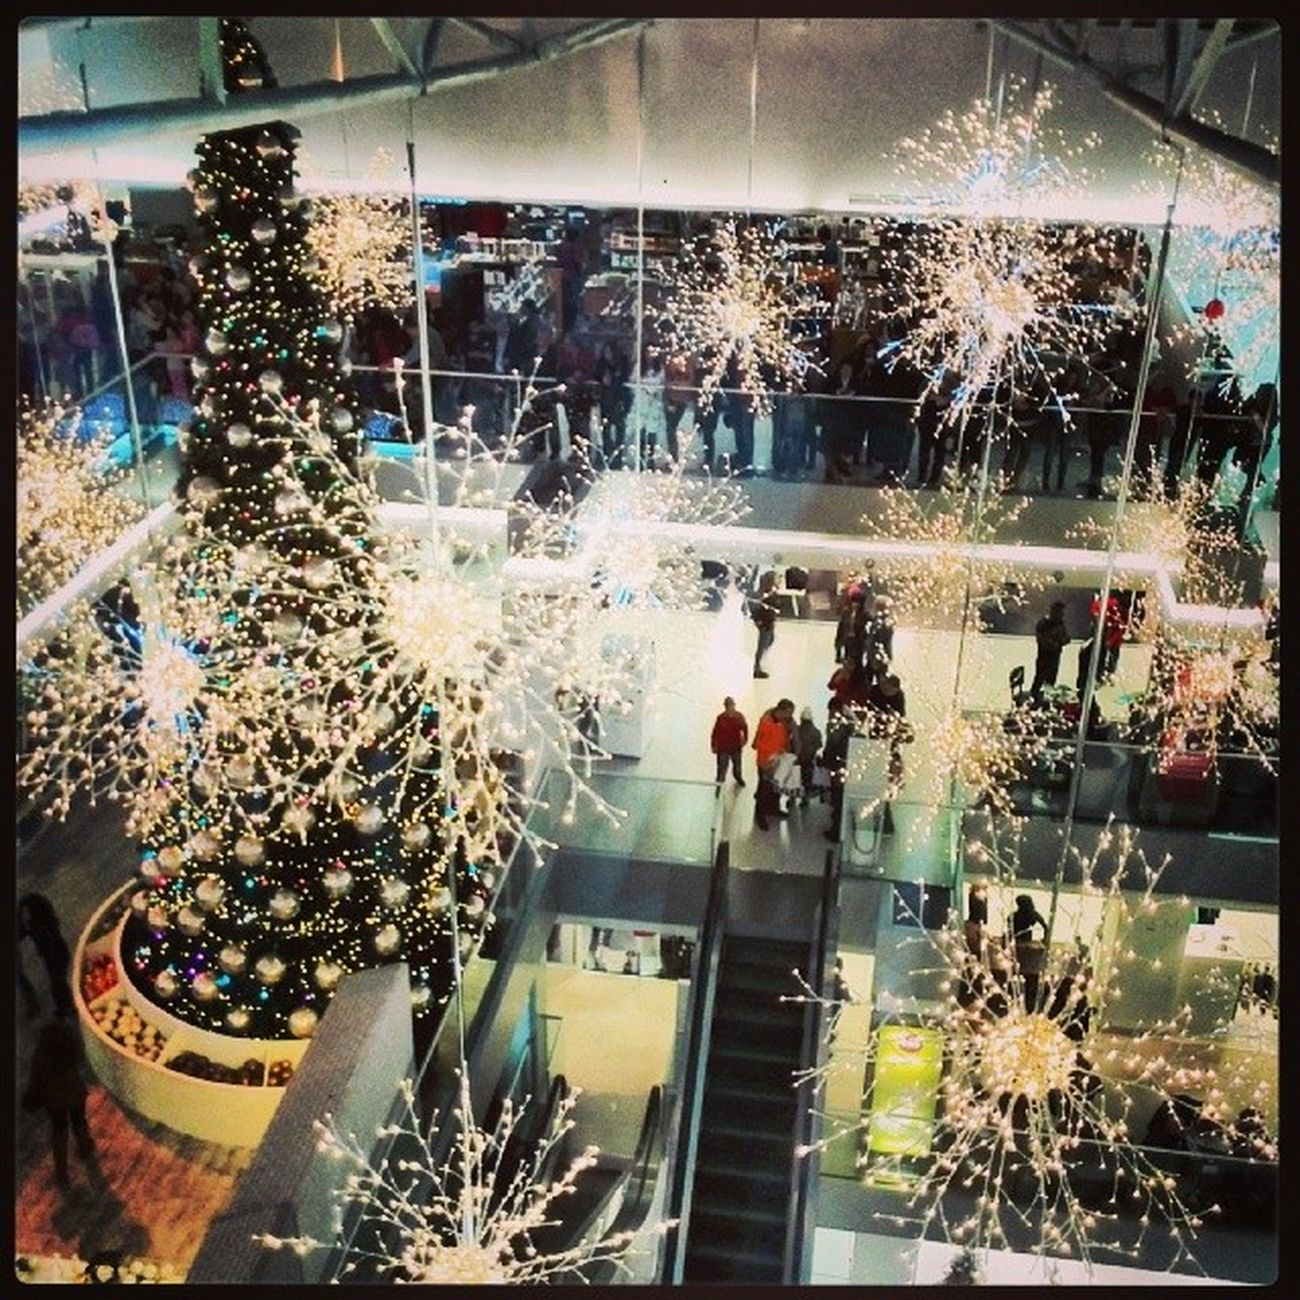 ABC Mall Dbayeh Christmas lightssparklingsantasantaclauseholidayfestivelovecuteinnocencegirlsgirlsfashiontreechristmastreedecoration